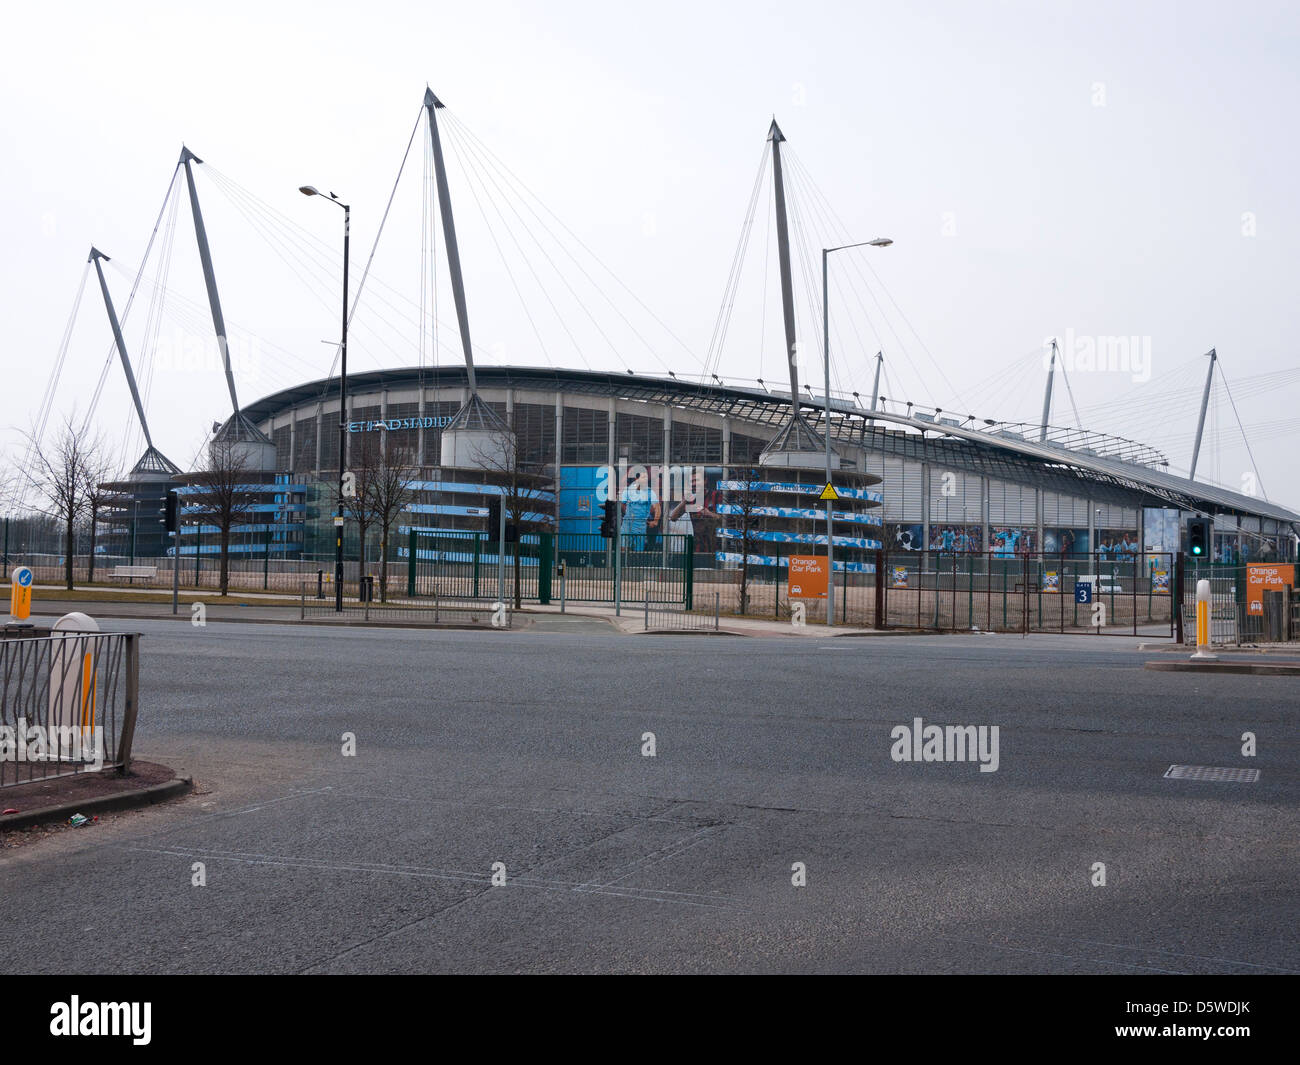 Manchester City Football Club The Etihad Stadium, Manchester UK. - Stock Image